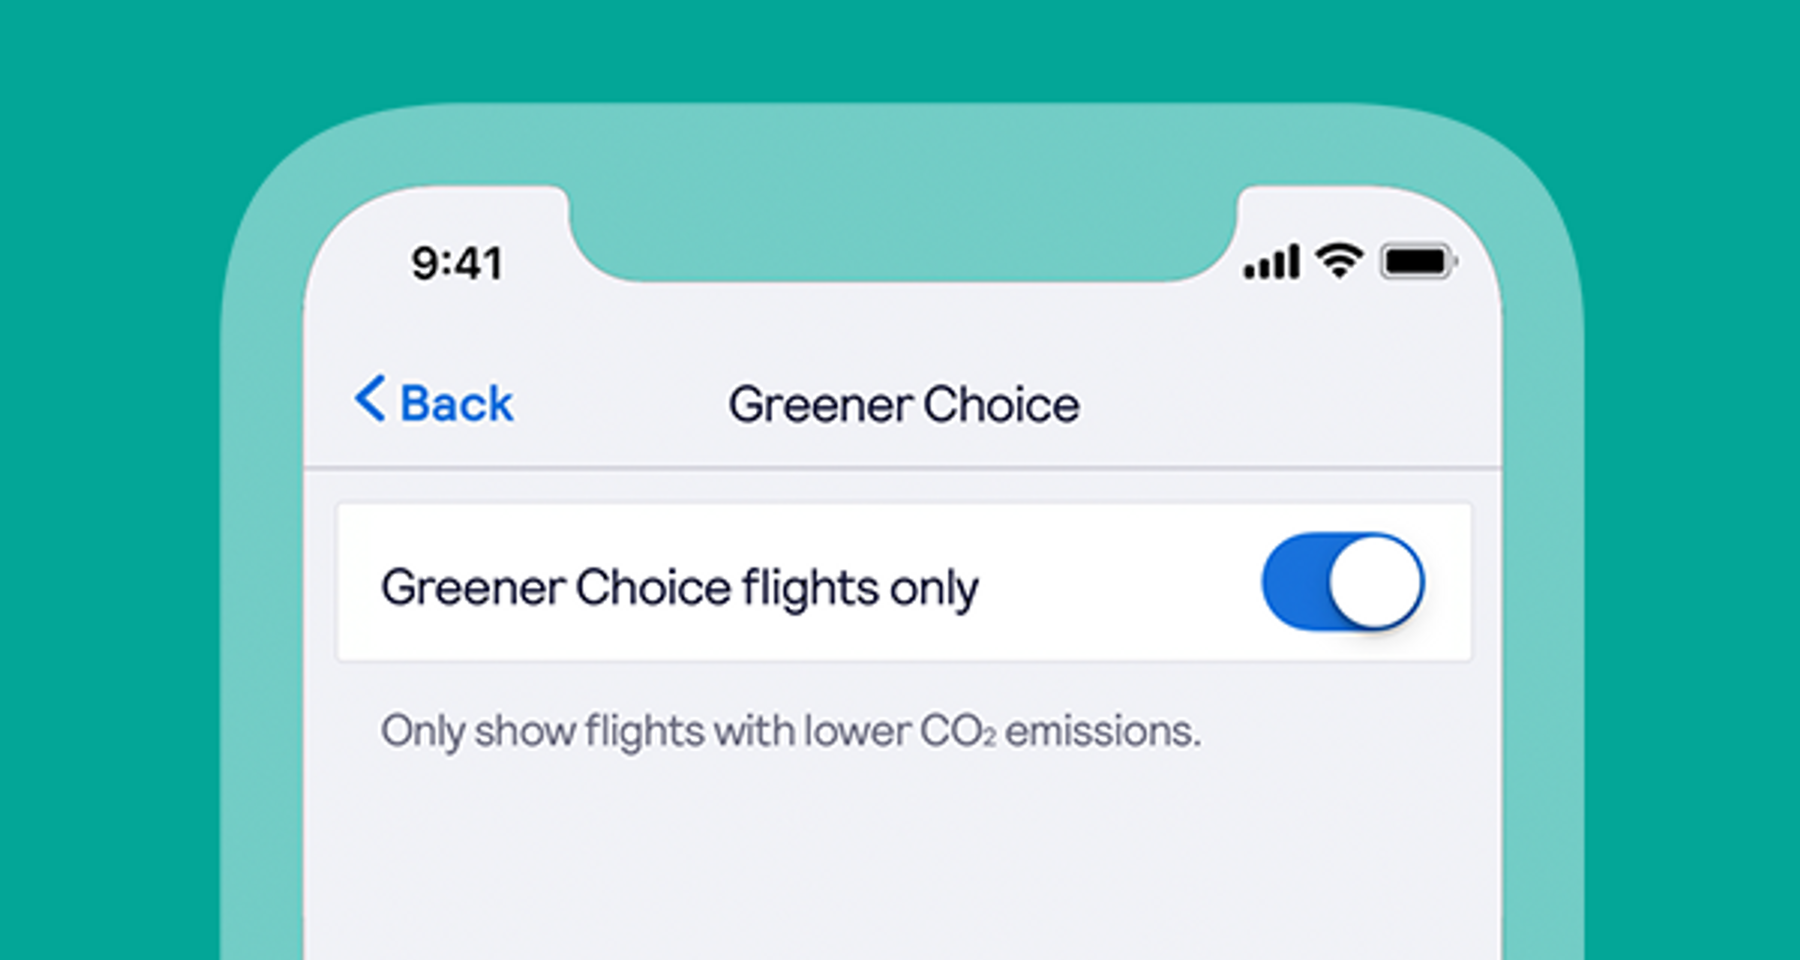 Choose greener choice flights on the app